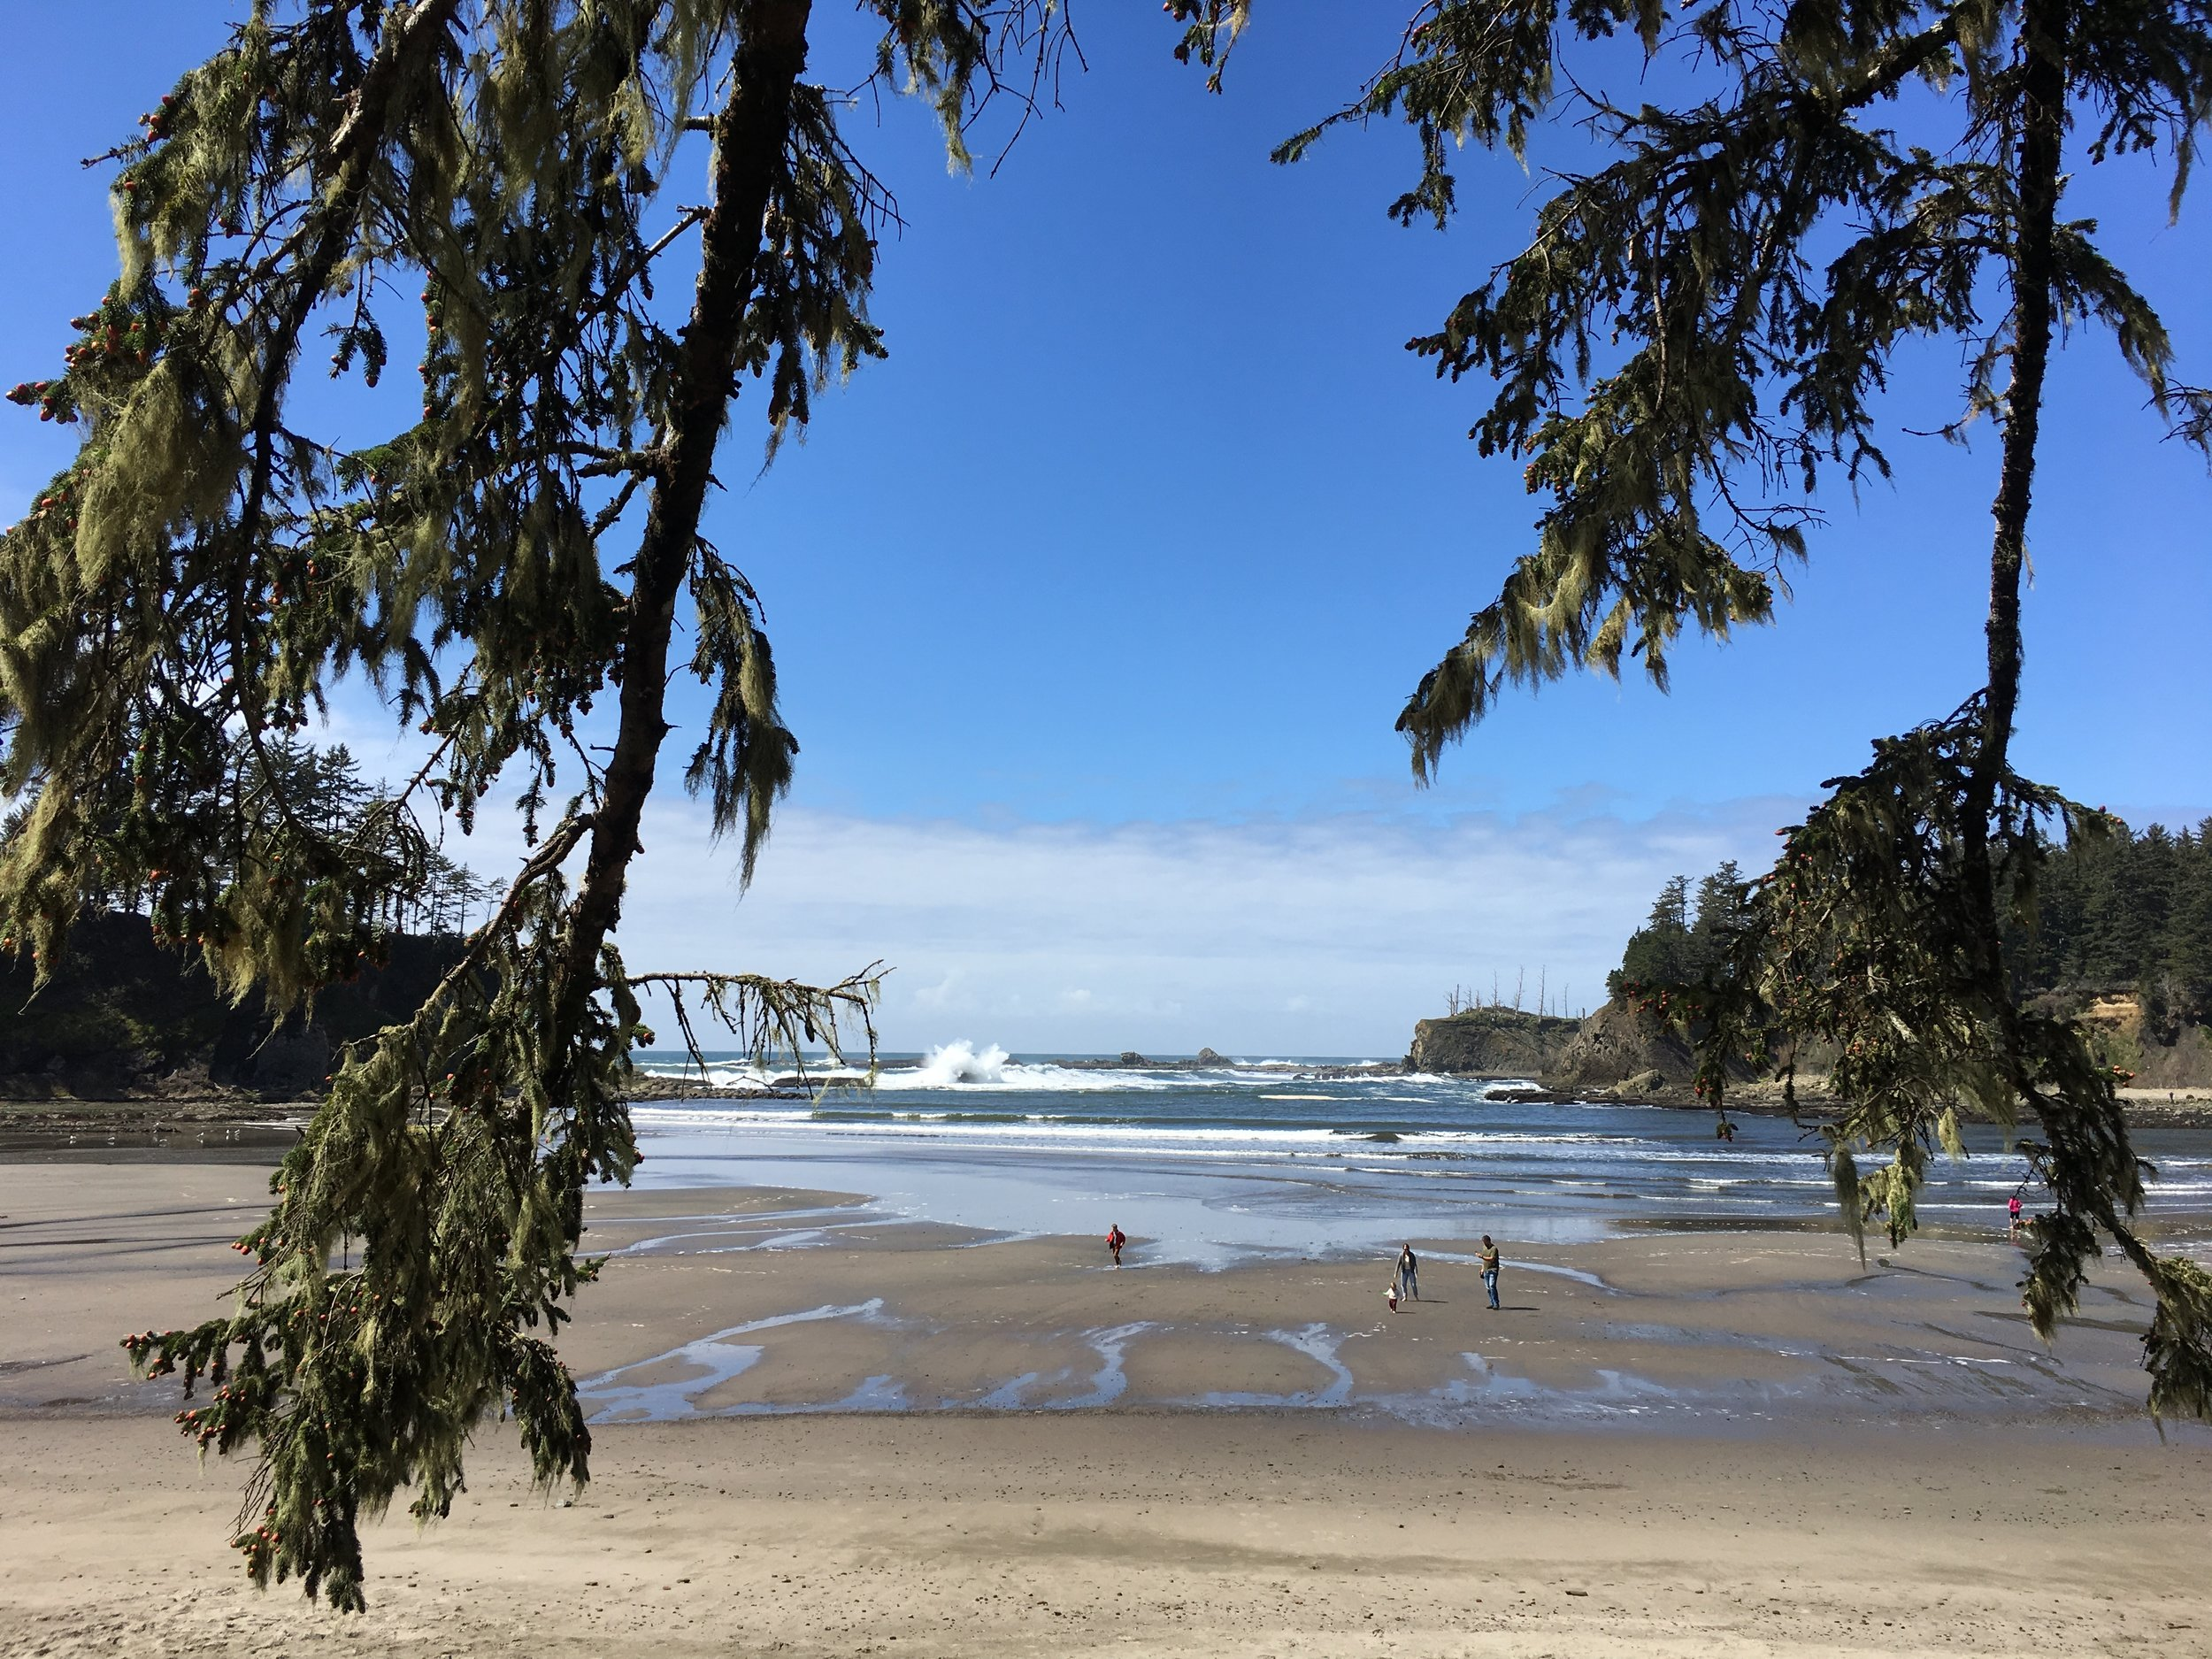 Glenda showed me around Cape Arago by Coos Bay, OR. Such a beautiful place!